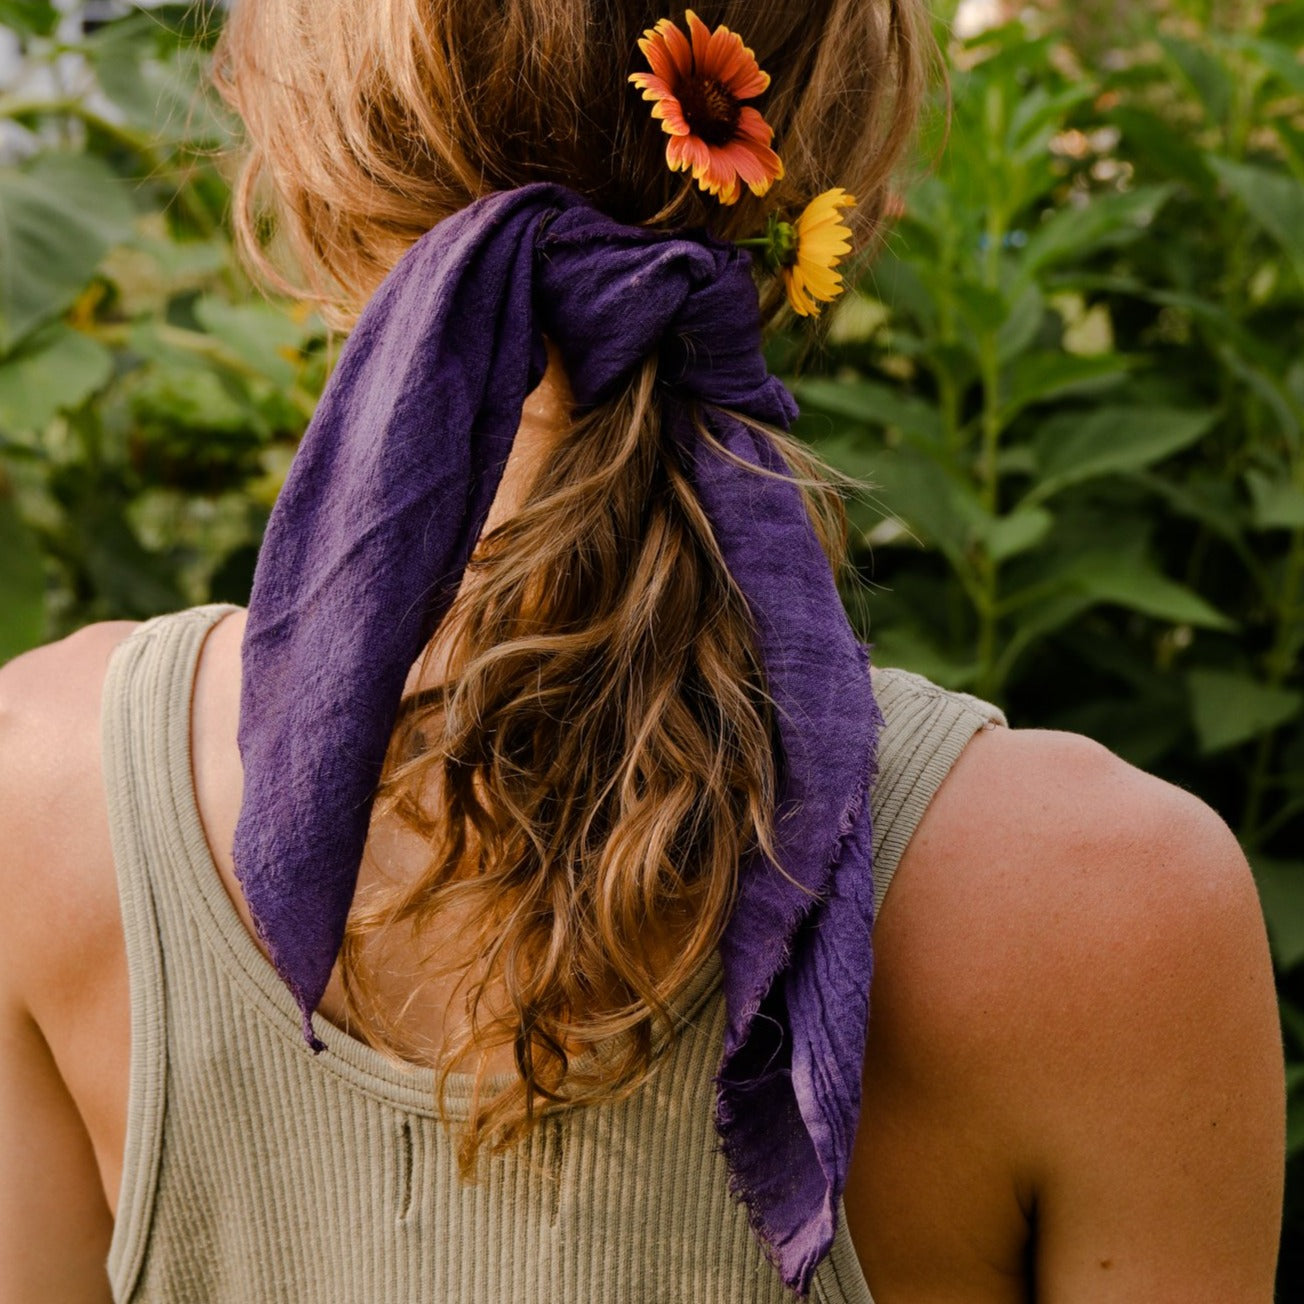 Plant Dyed Bandana Kerchief - Deep Violet Cotton Gauze, Rosemarine Textiles, Handcrafted Home Goods and Gifts